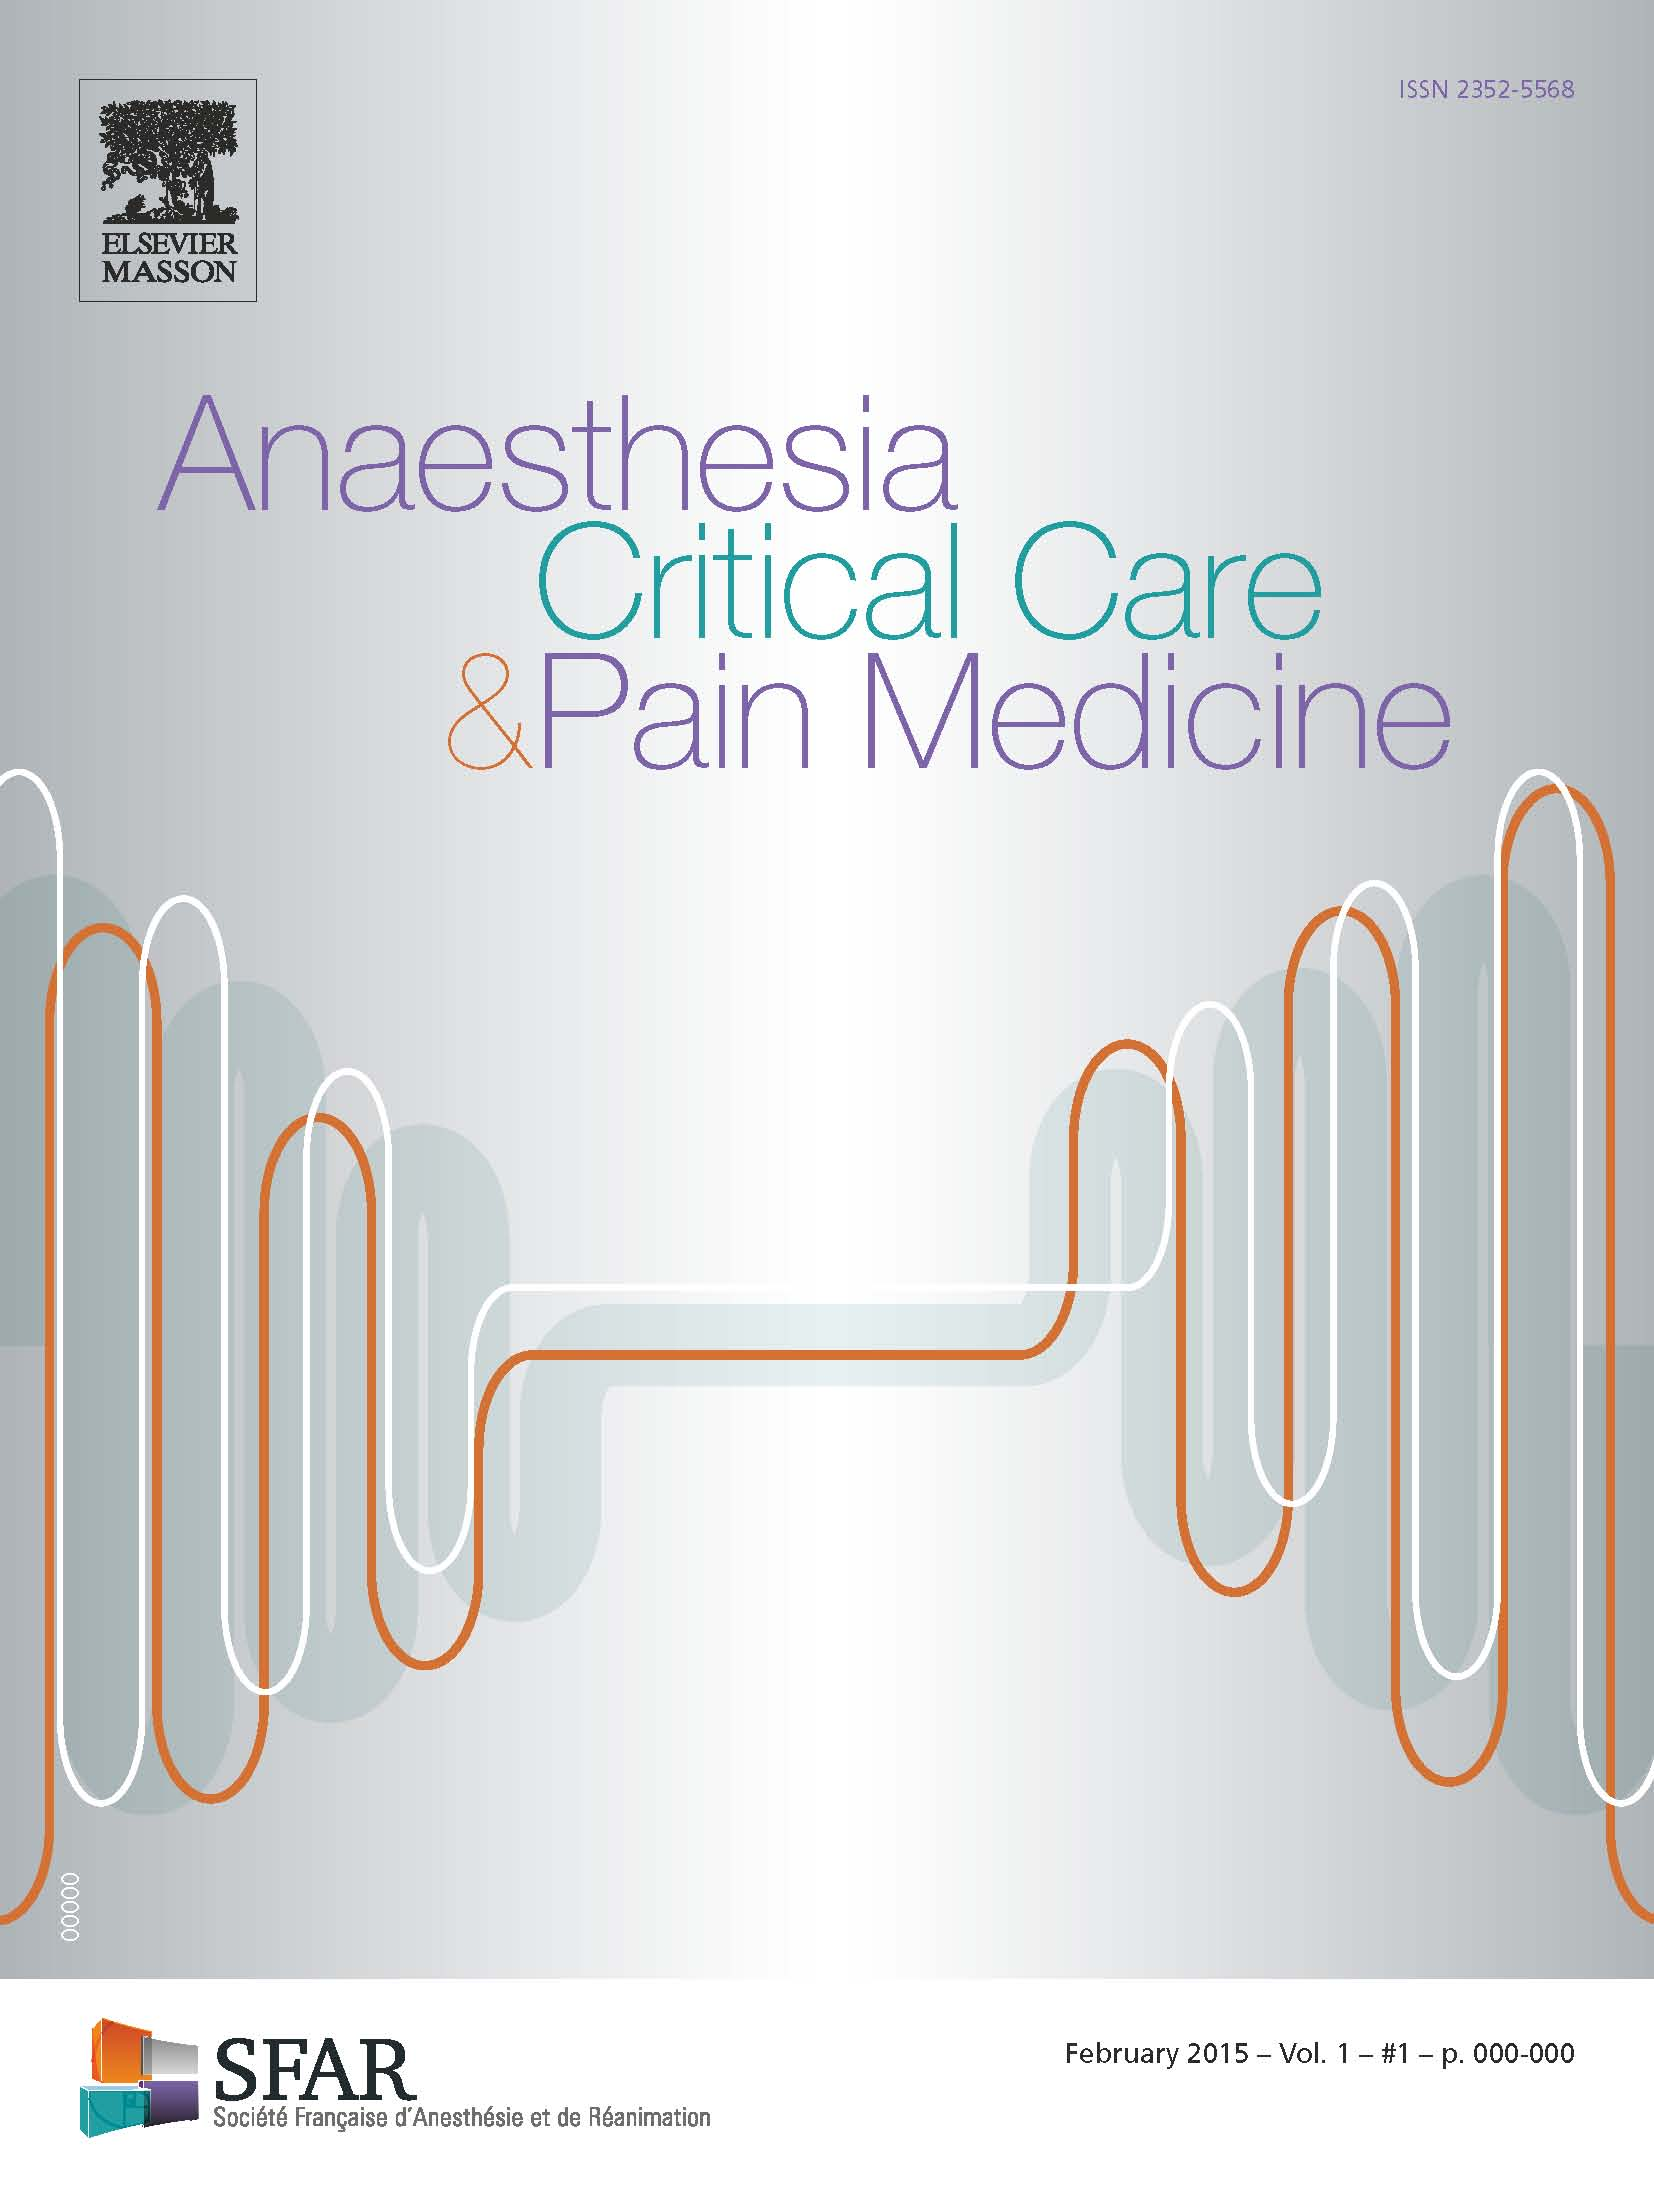 Anaesthesia critical care and pain medicine